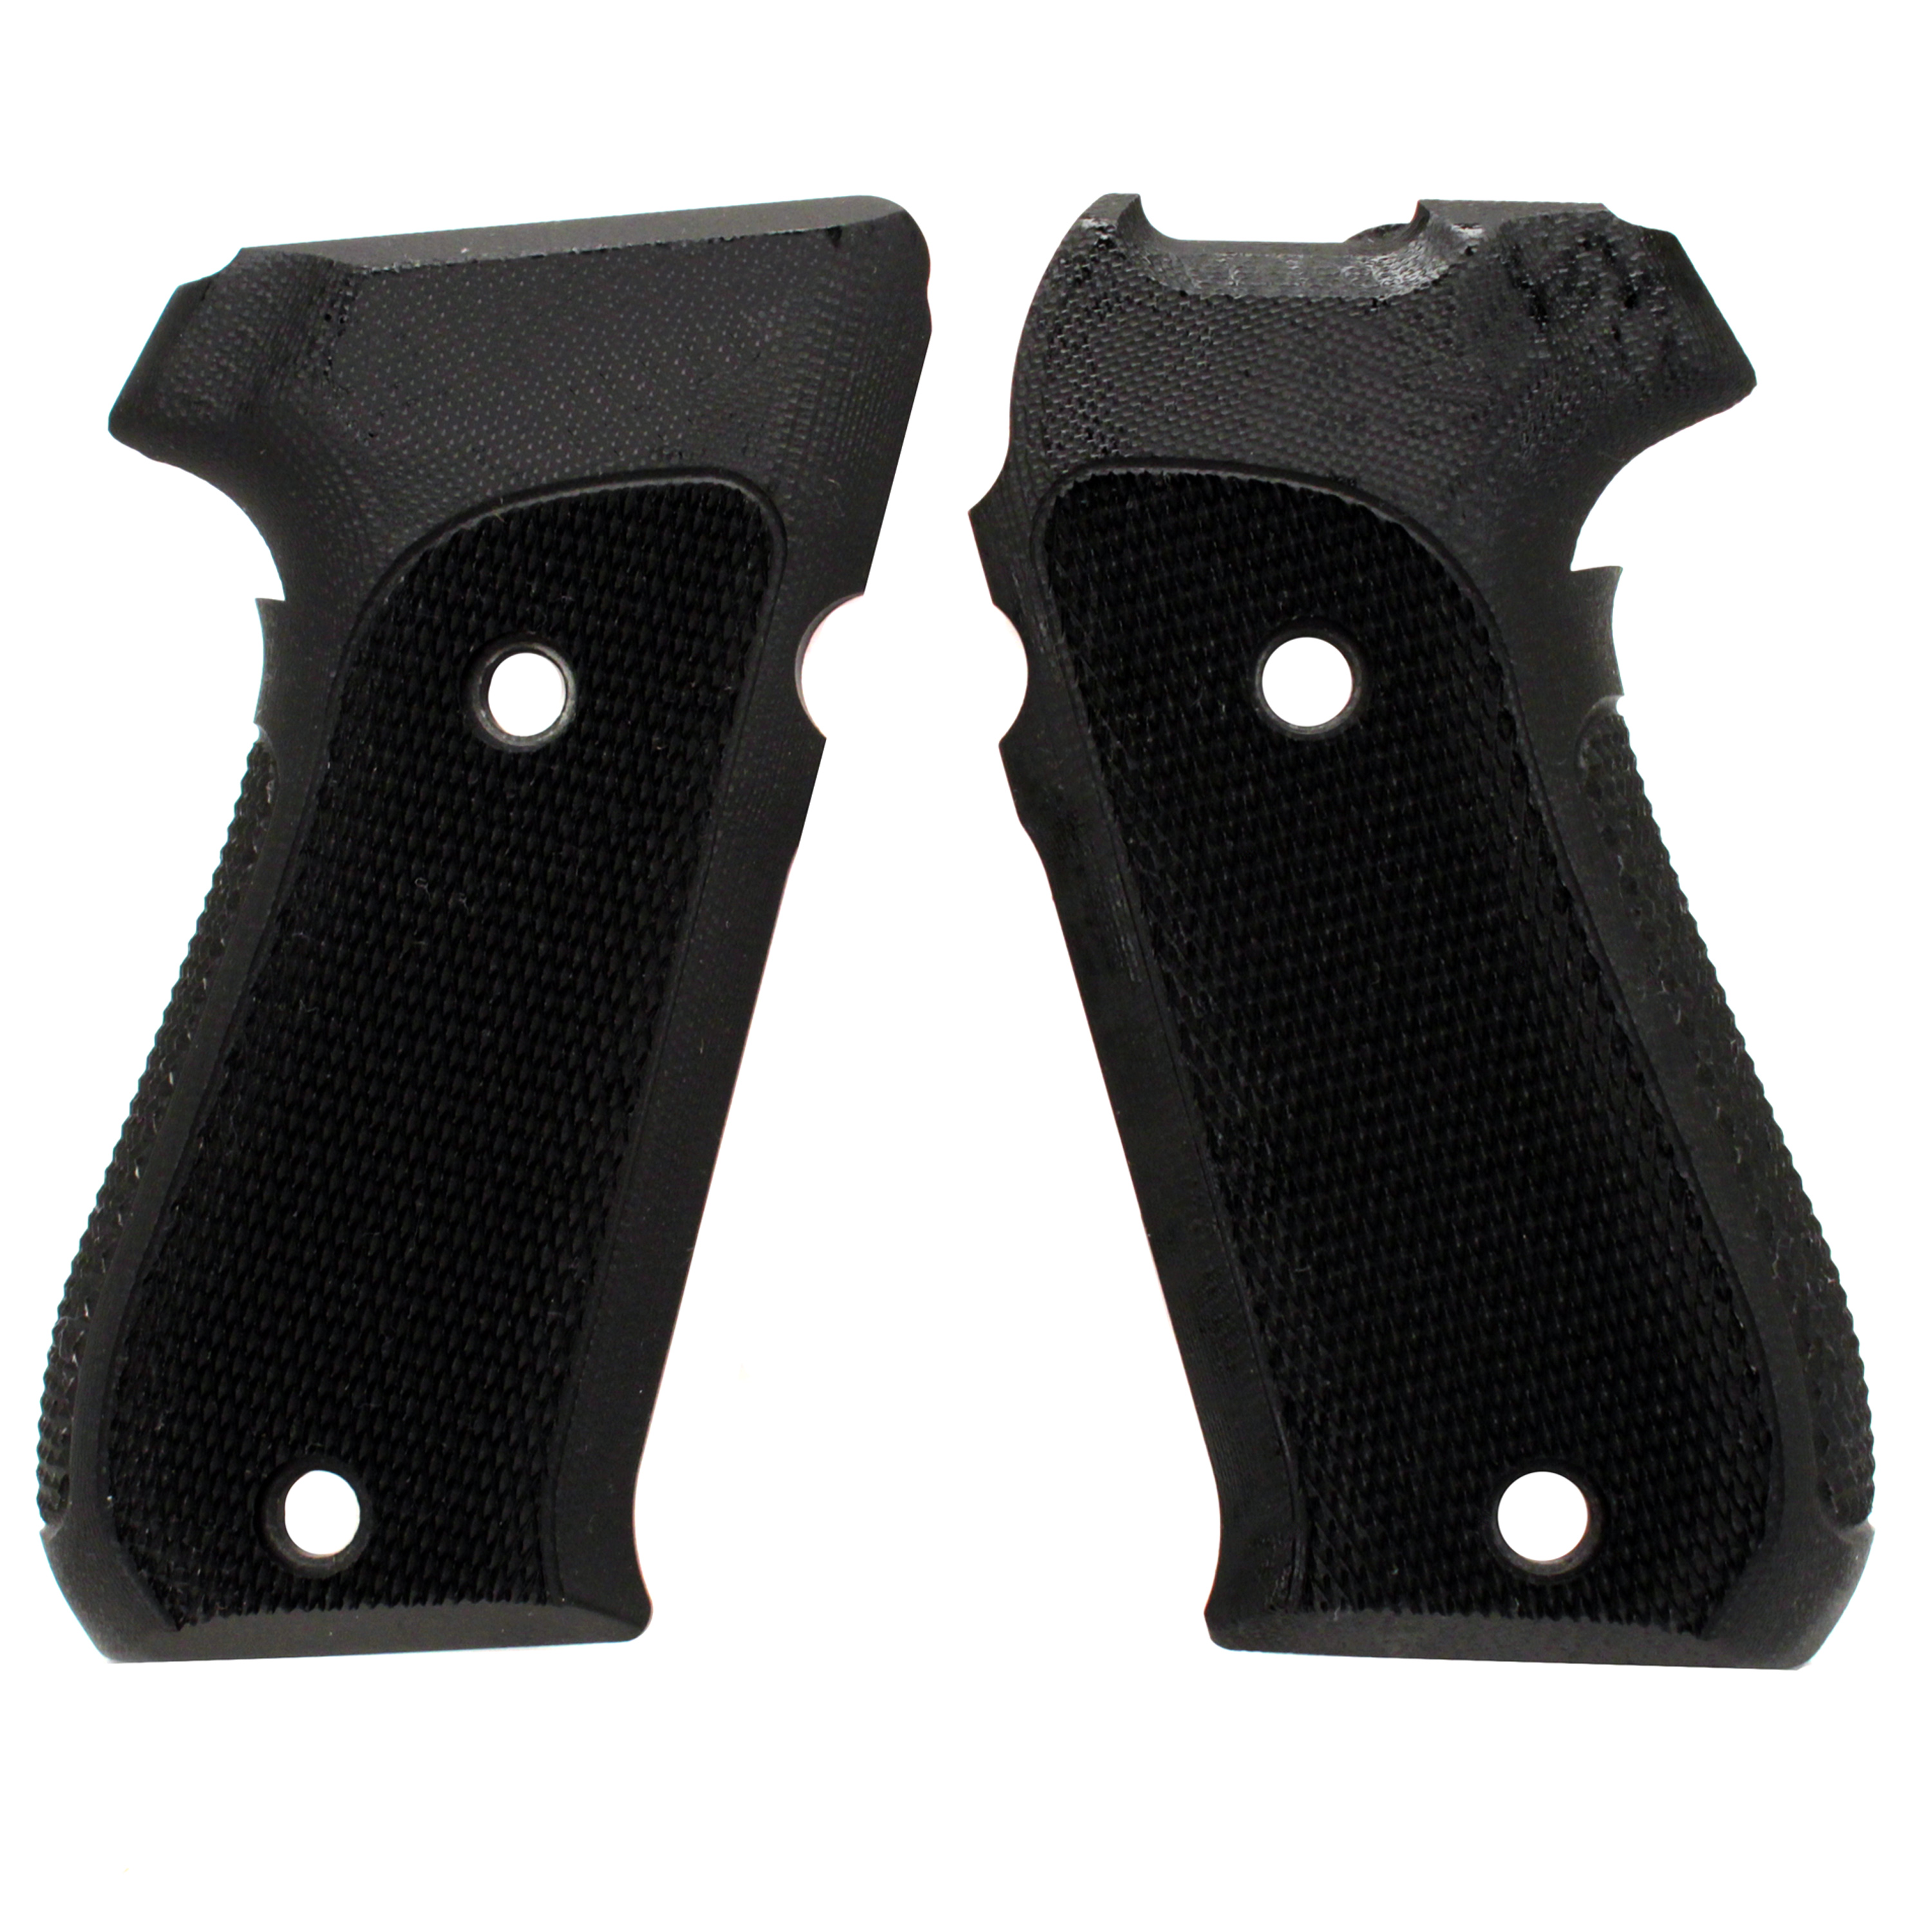 Hogue Grips Grip, Fits Sig P220, Black, American Checkered G10